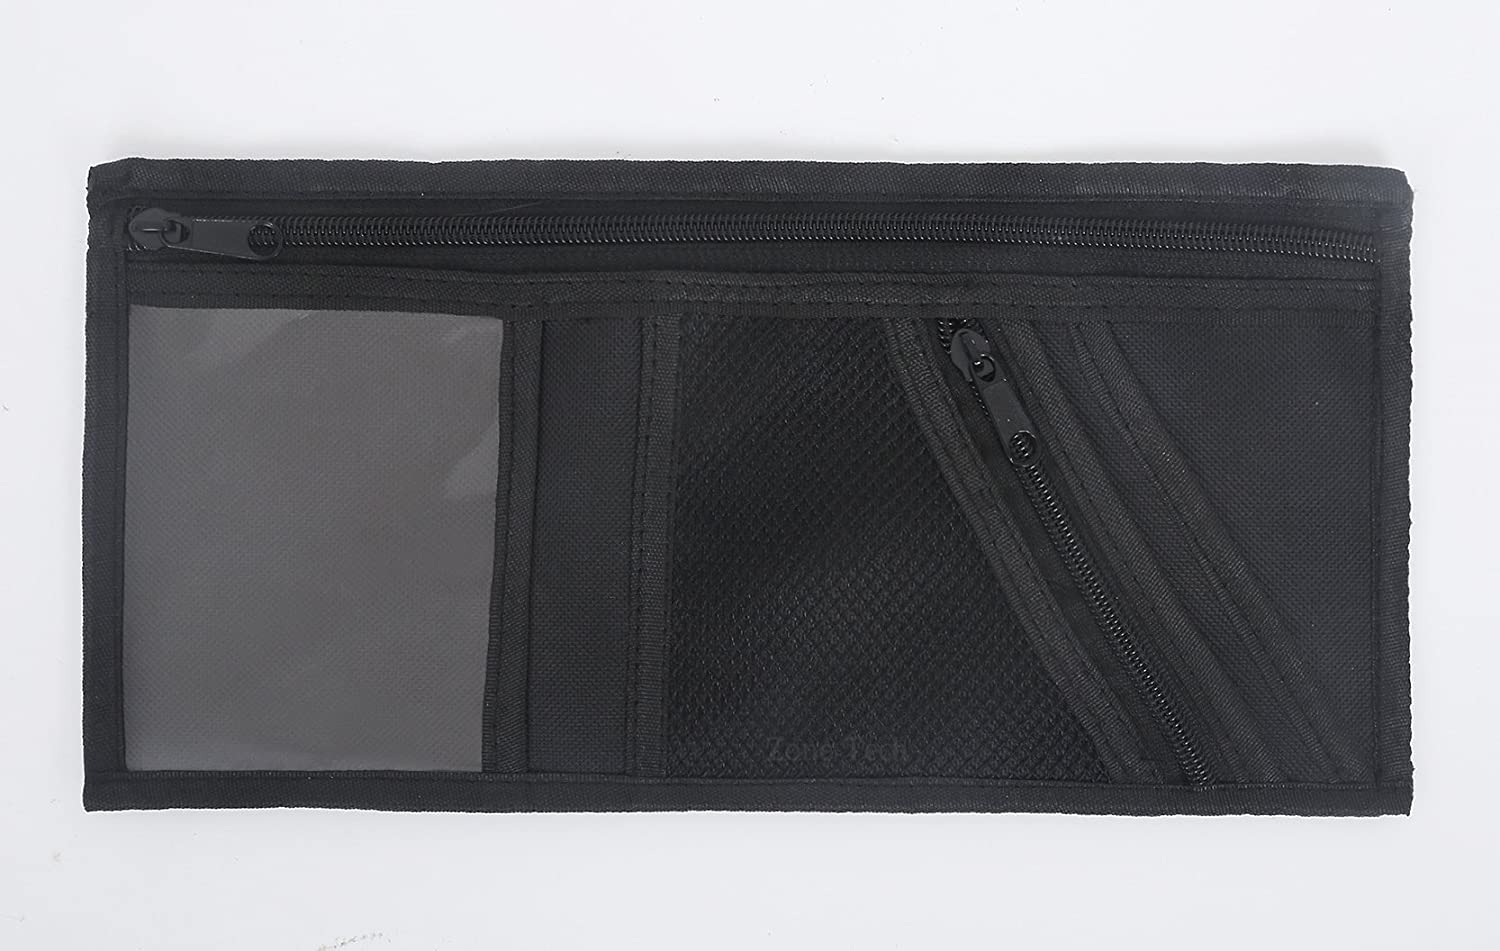 zone tech 5 pocket car visor organizer premium quality mesh and zippered pockets ebay. Black Bedroom Furniture Sets. Home Design Ideas